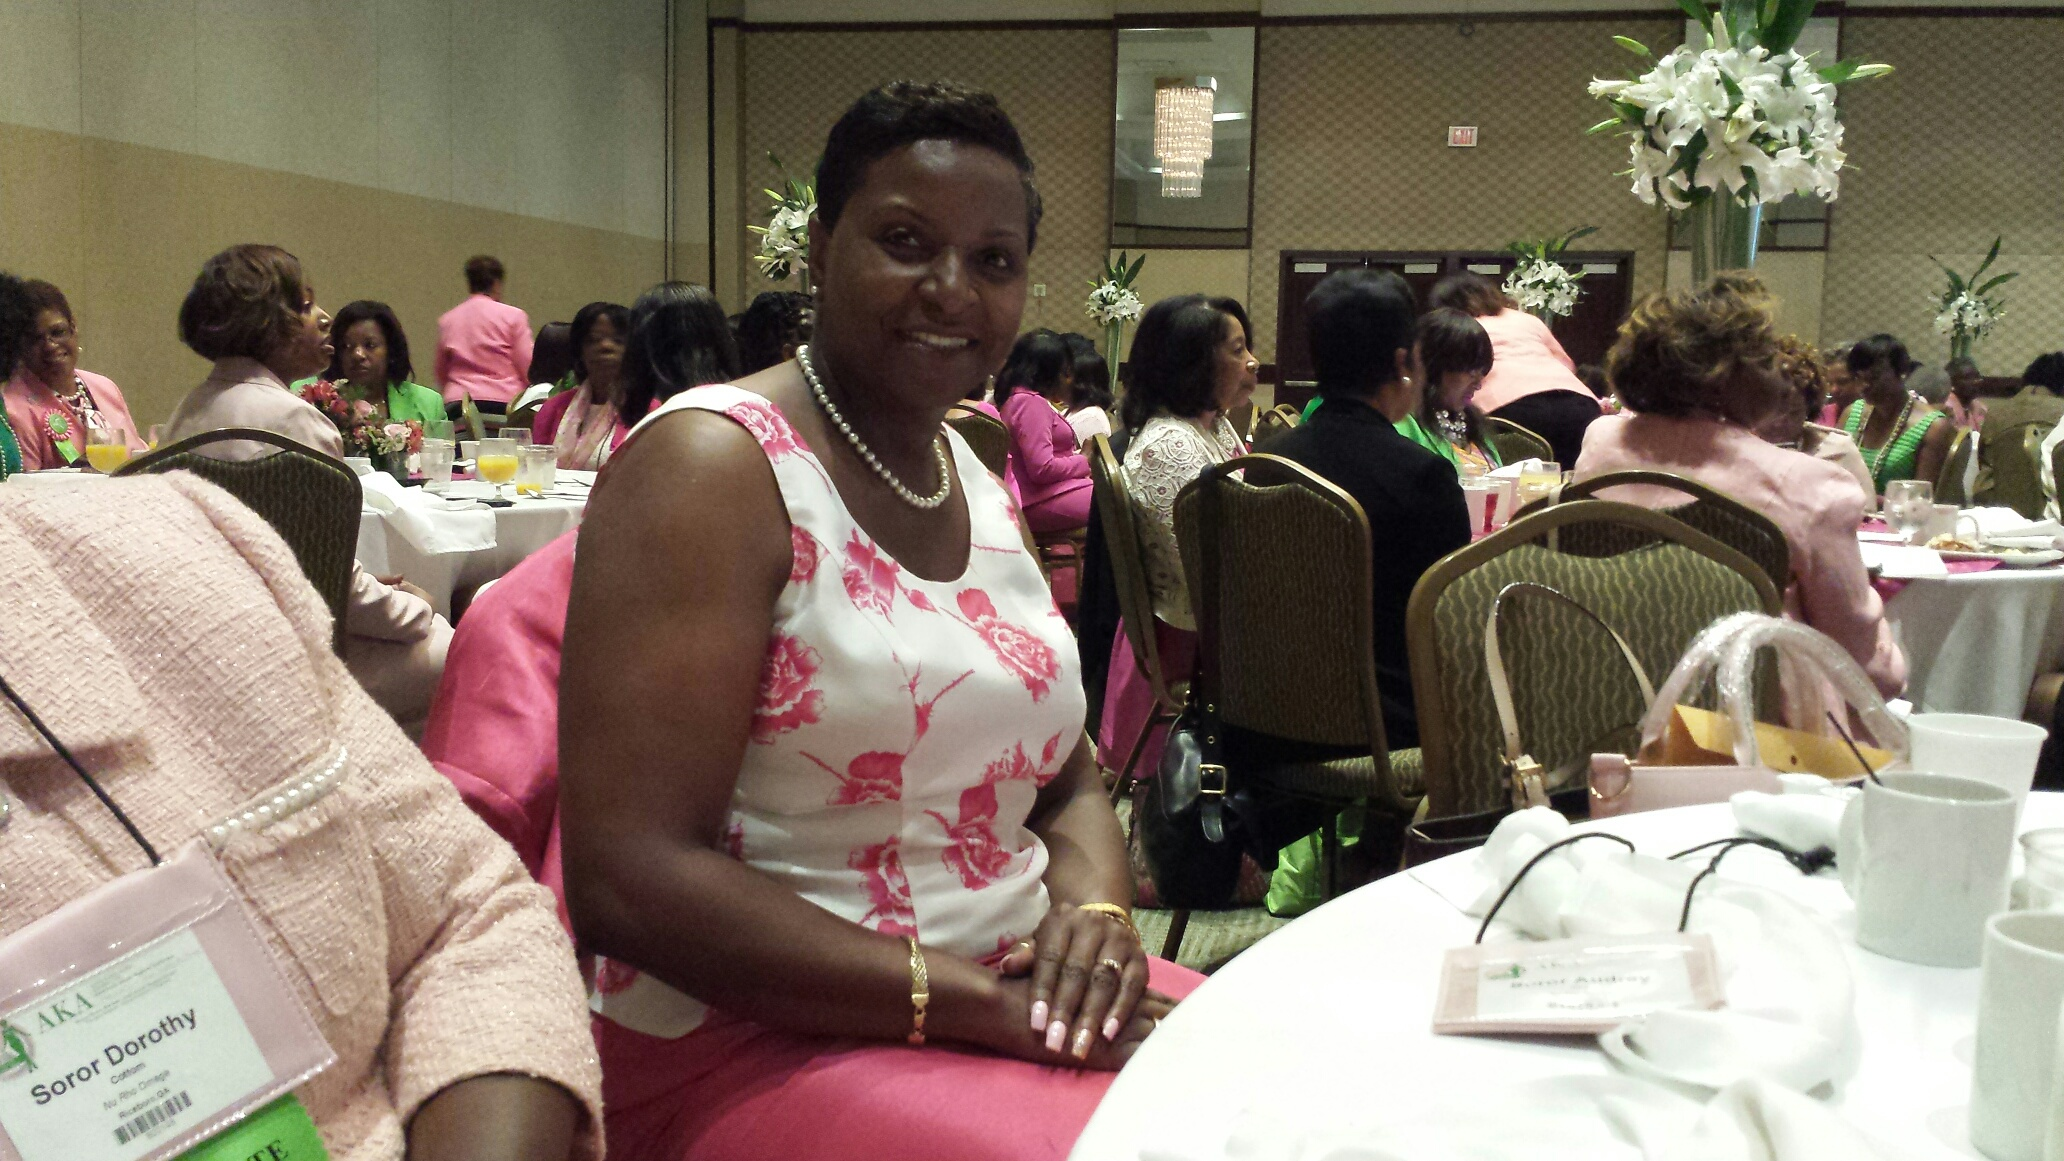 Soror Audrey, Soror of the Year